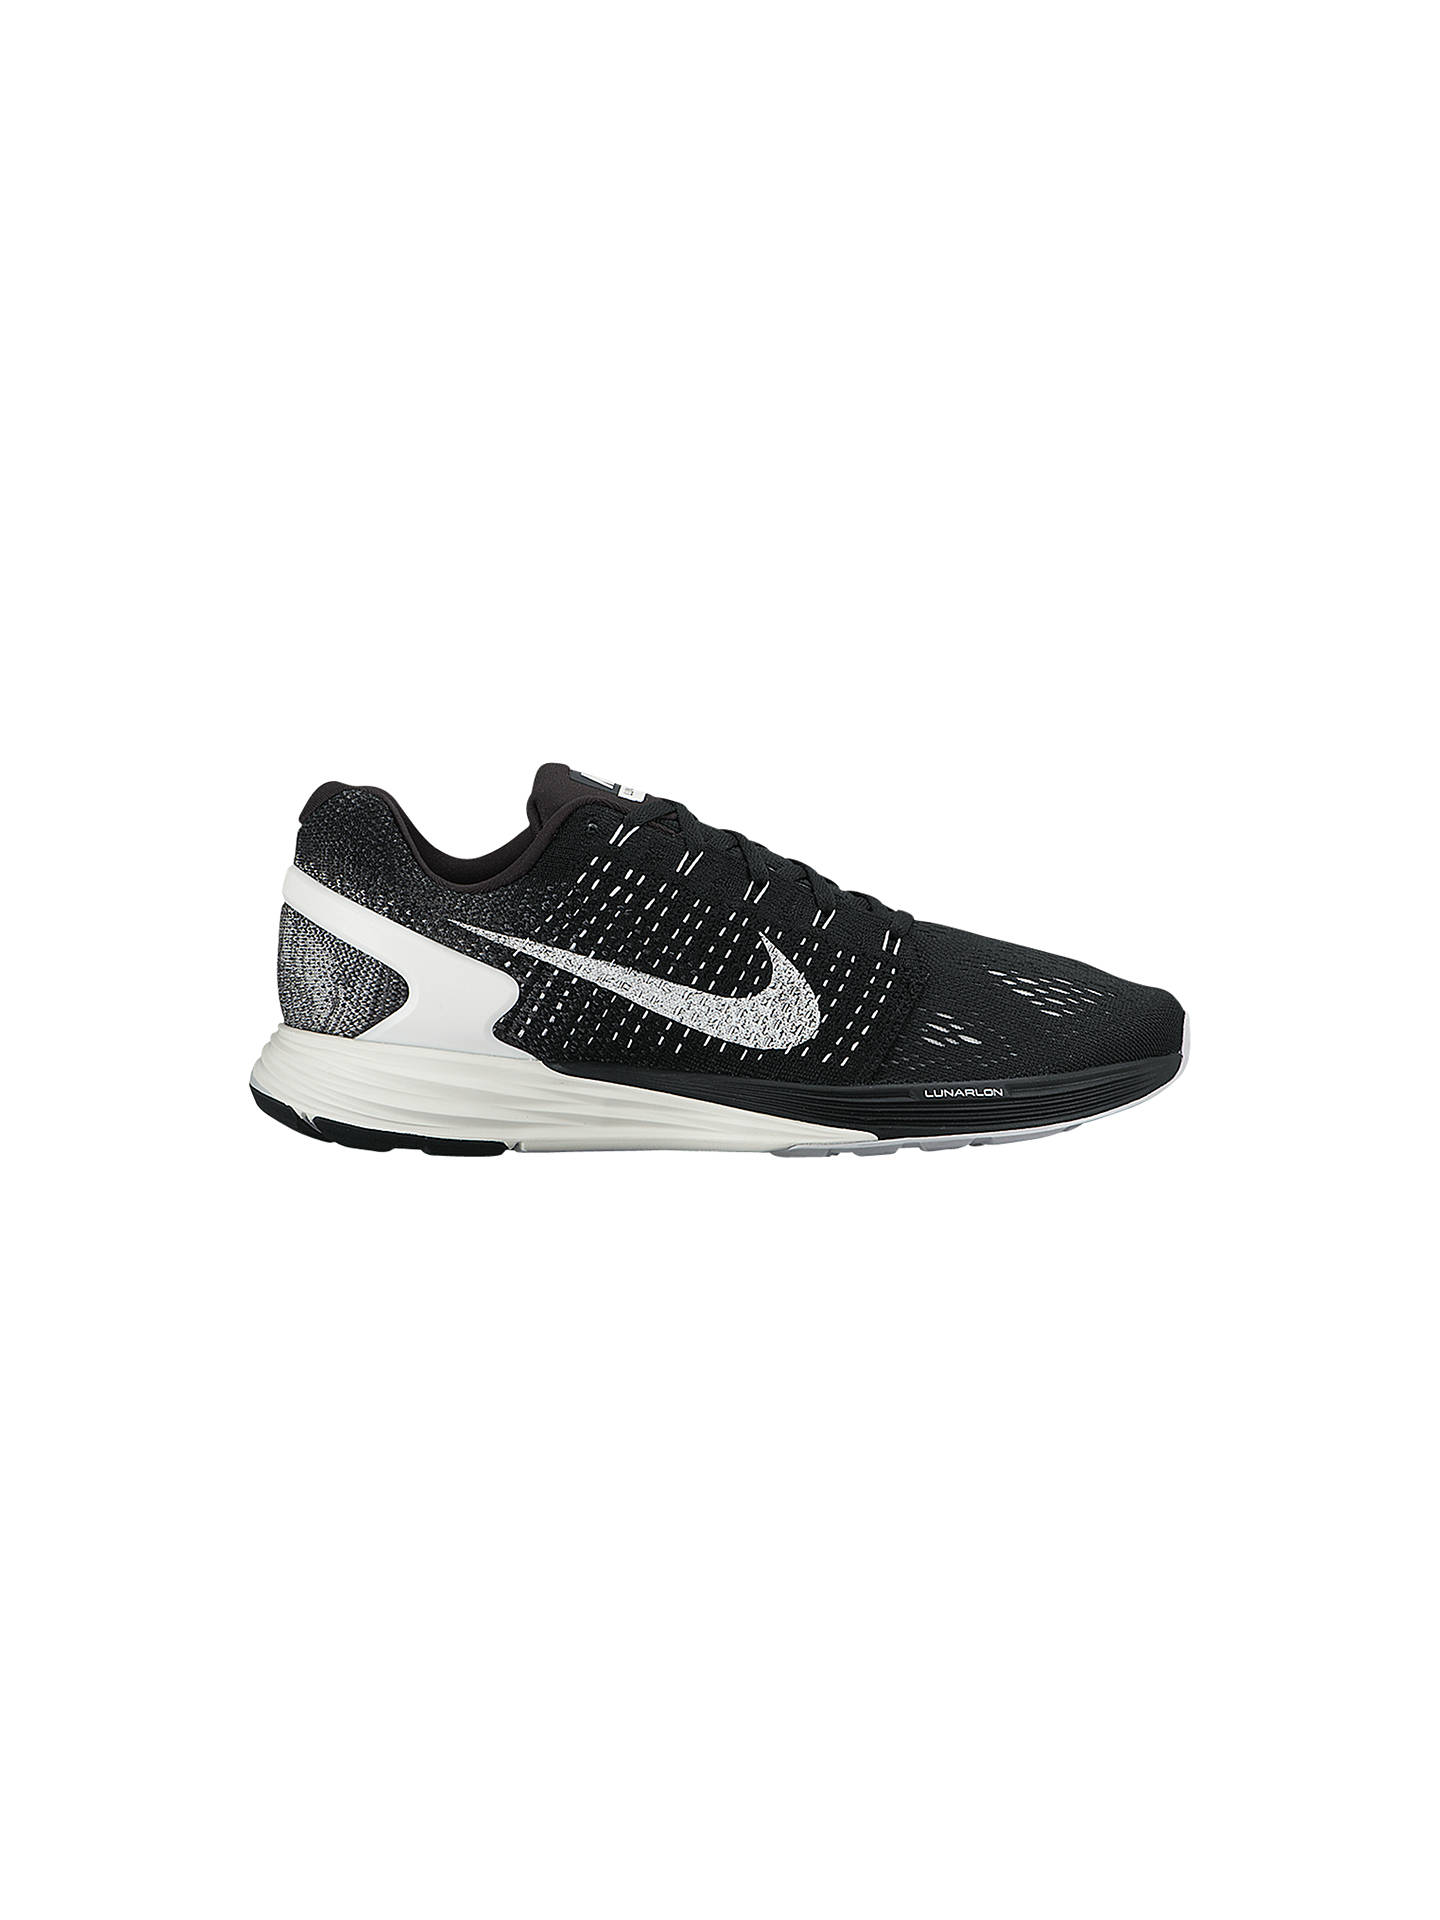 super popular 6fcb8 b5ddf Buy Nike LunarGlide 7 Men s Running Shoes, Black Anthracite, 7 Online at  johnlewis ...